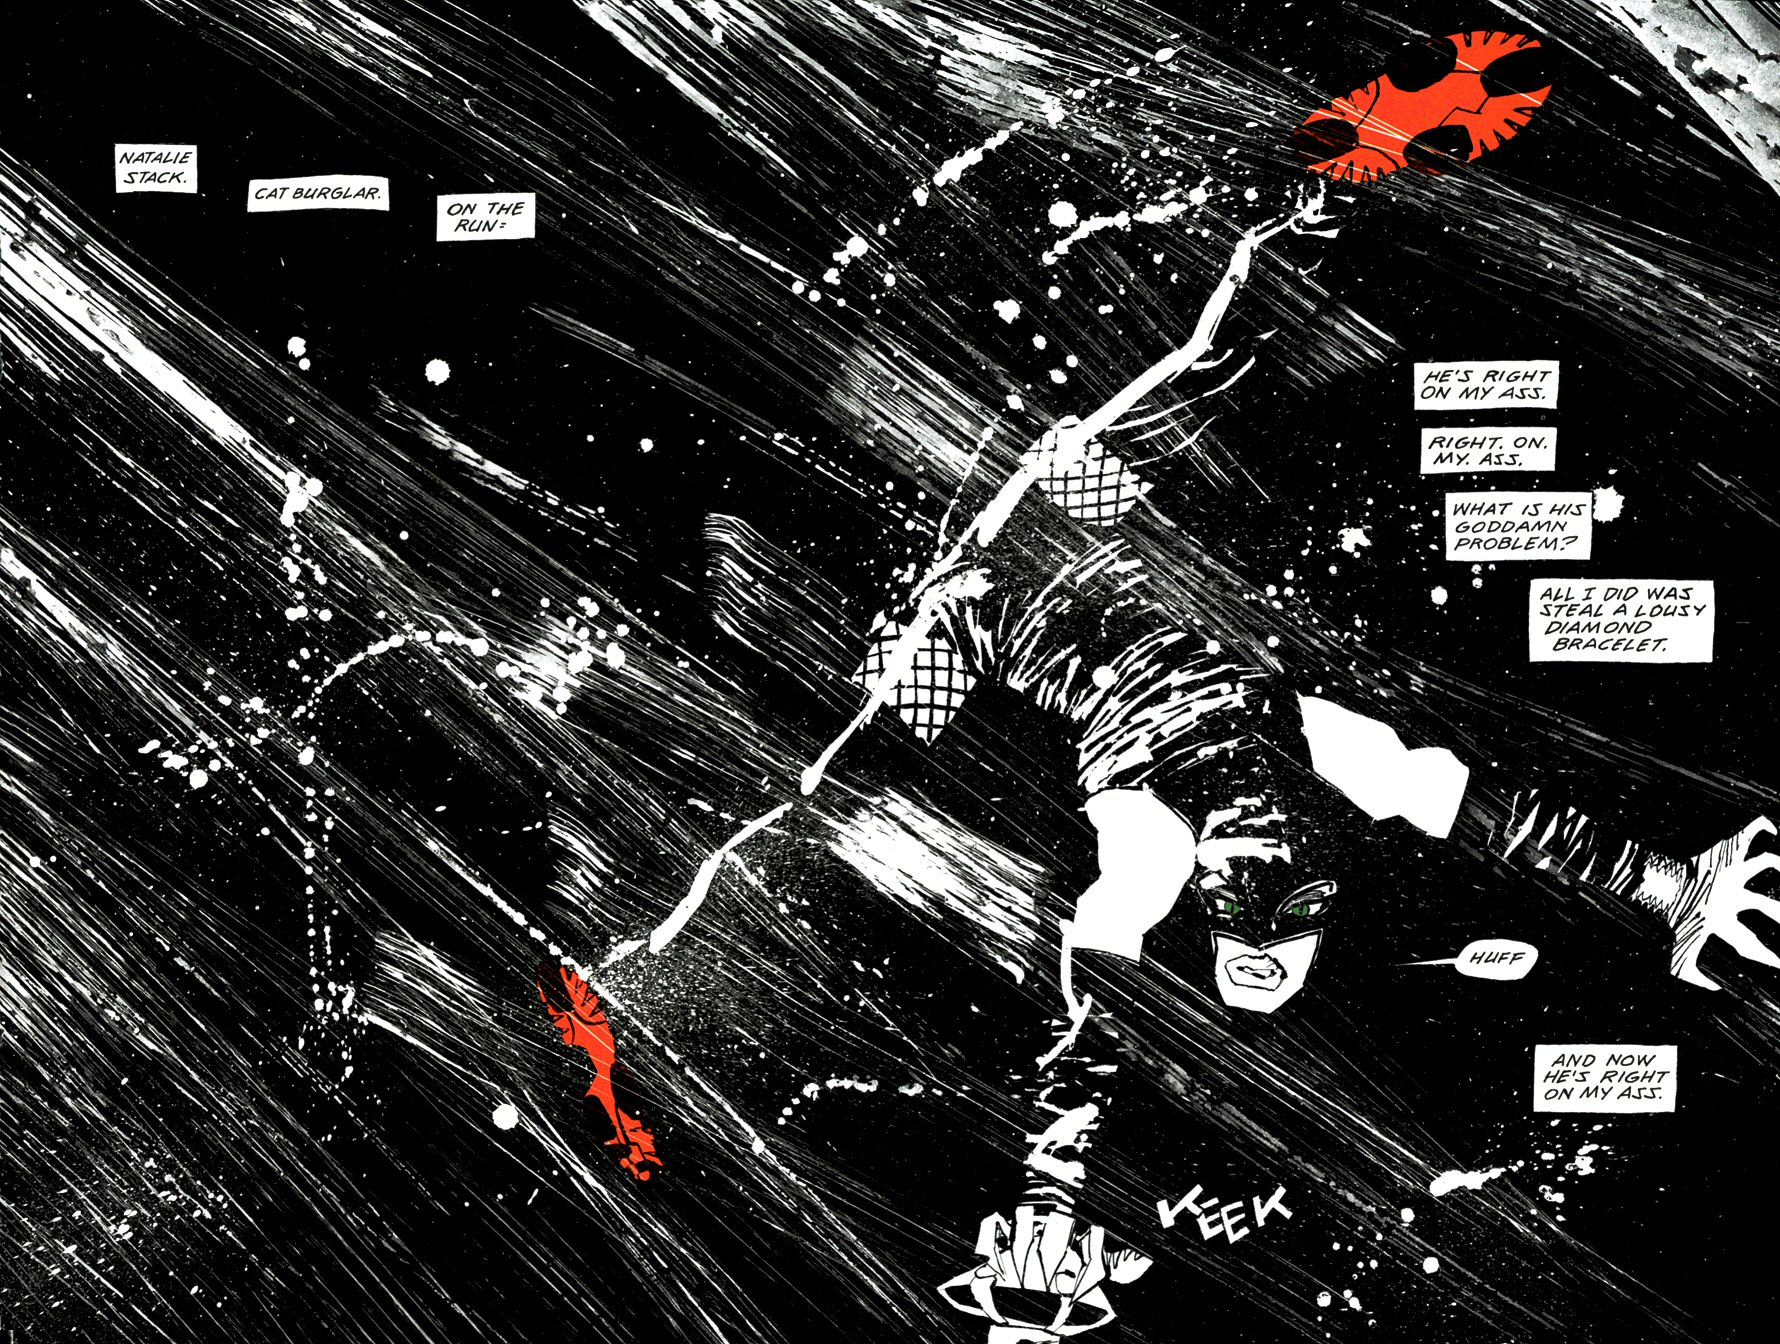 Read online Frank Miller's Holy Terror comic -  Issue # TPB - 16